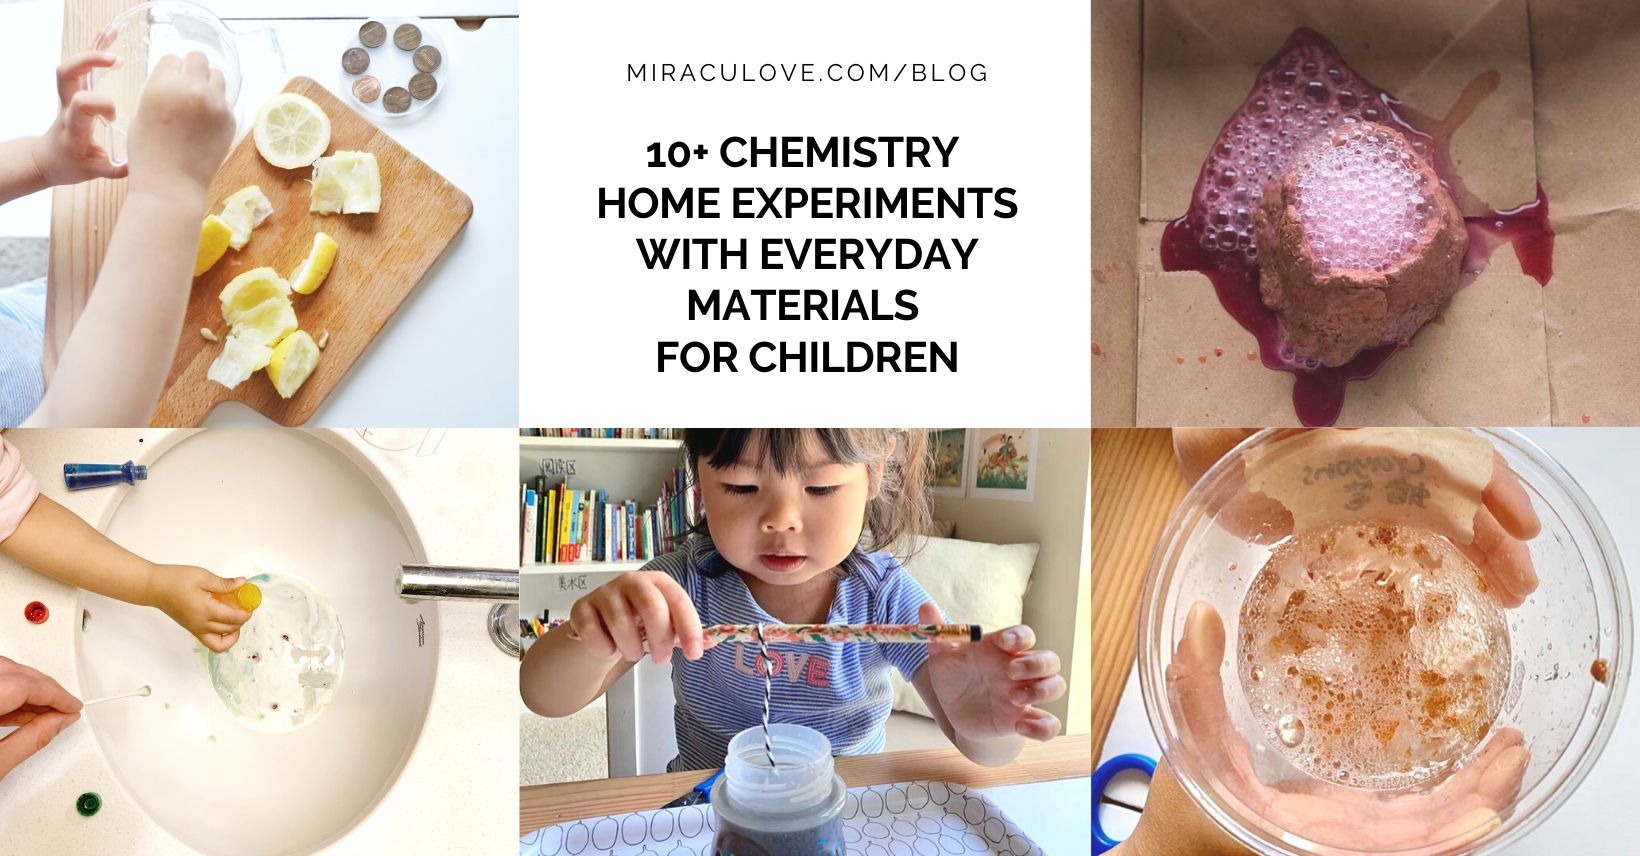 10+ Chemistry Home Experiments with Everyday Materials for Children